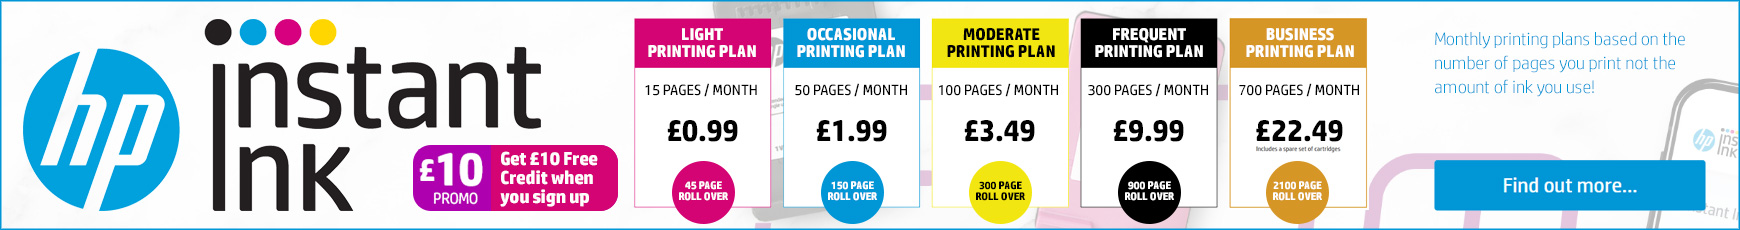 Find out more about HP Instant Ink